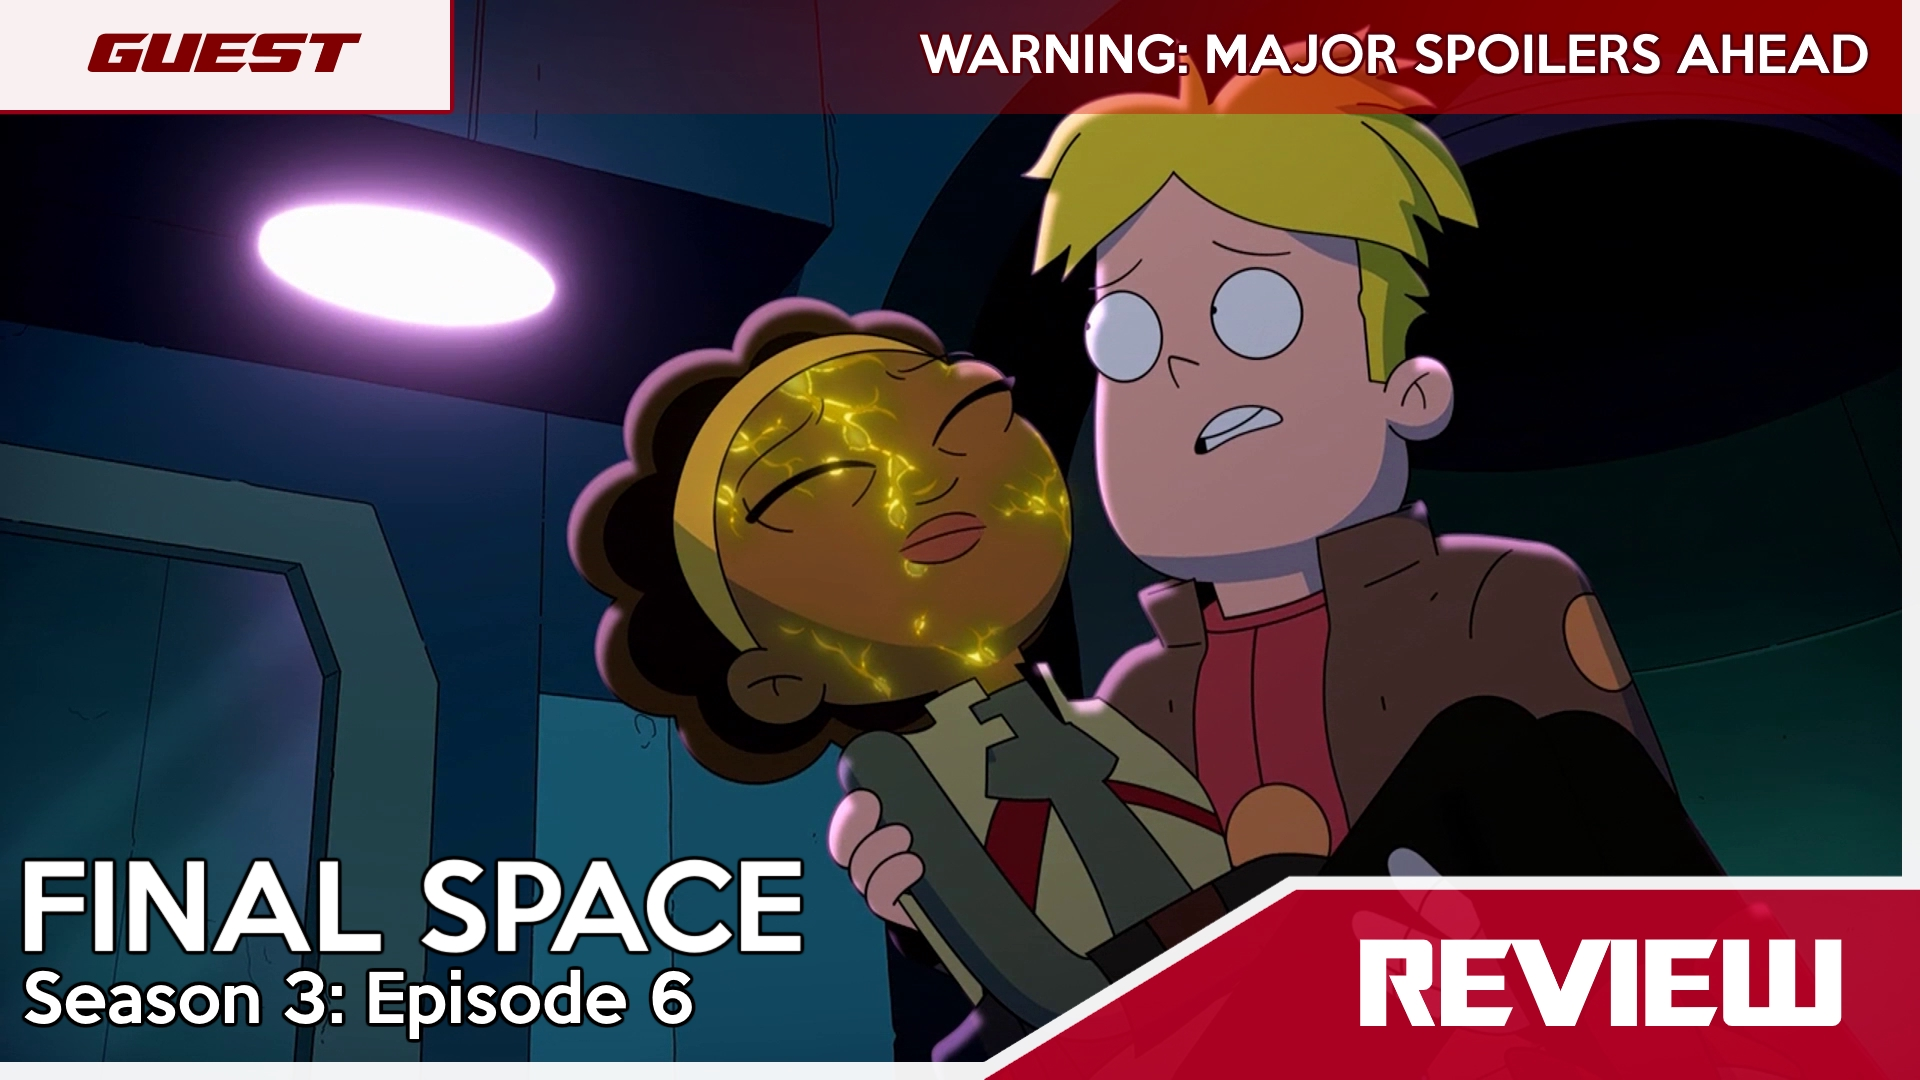 Final Space Season 3 Episode 6 Review